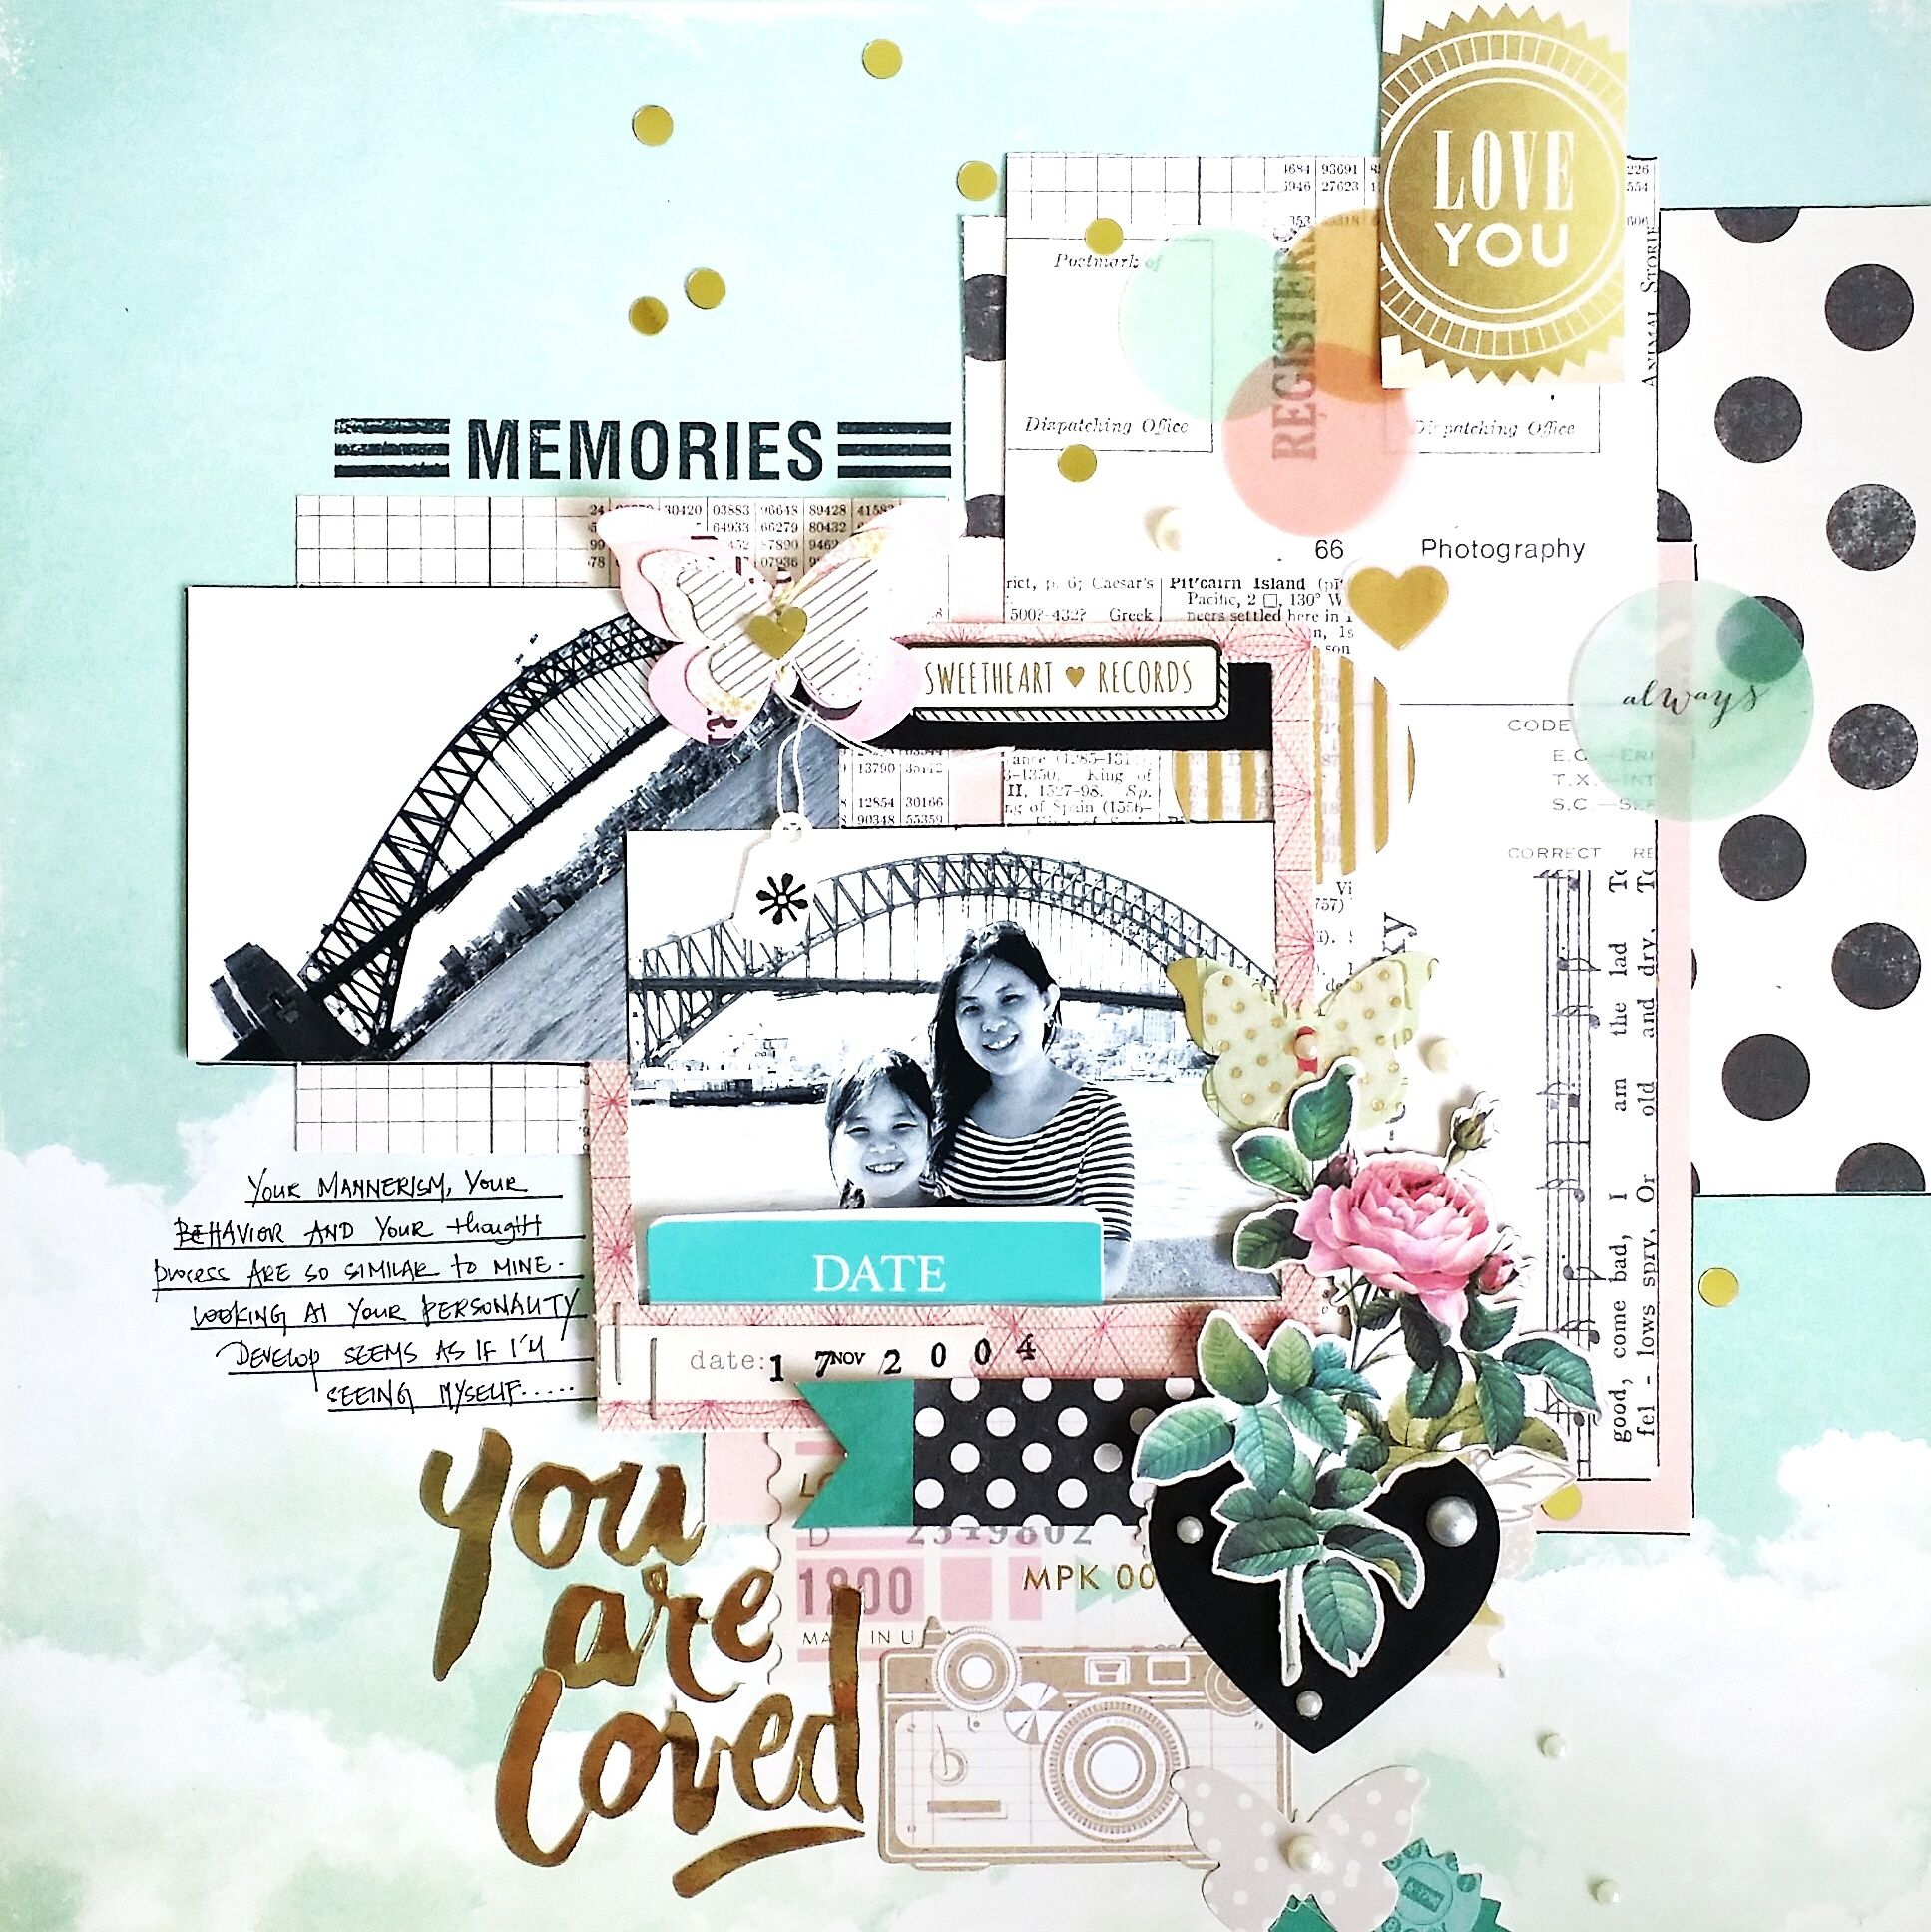 #papercraft #scrapbooking #layout - You are Loved - Crate Paper - Maggie Holmes Collection - Styleboard - 12 x 12 Double Sided Paper - Daydream + Crate Paper - Notes and Things Collection - Cardstock Stickers